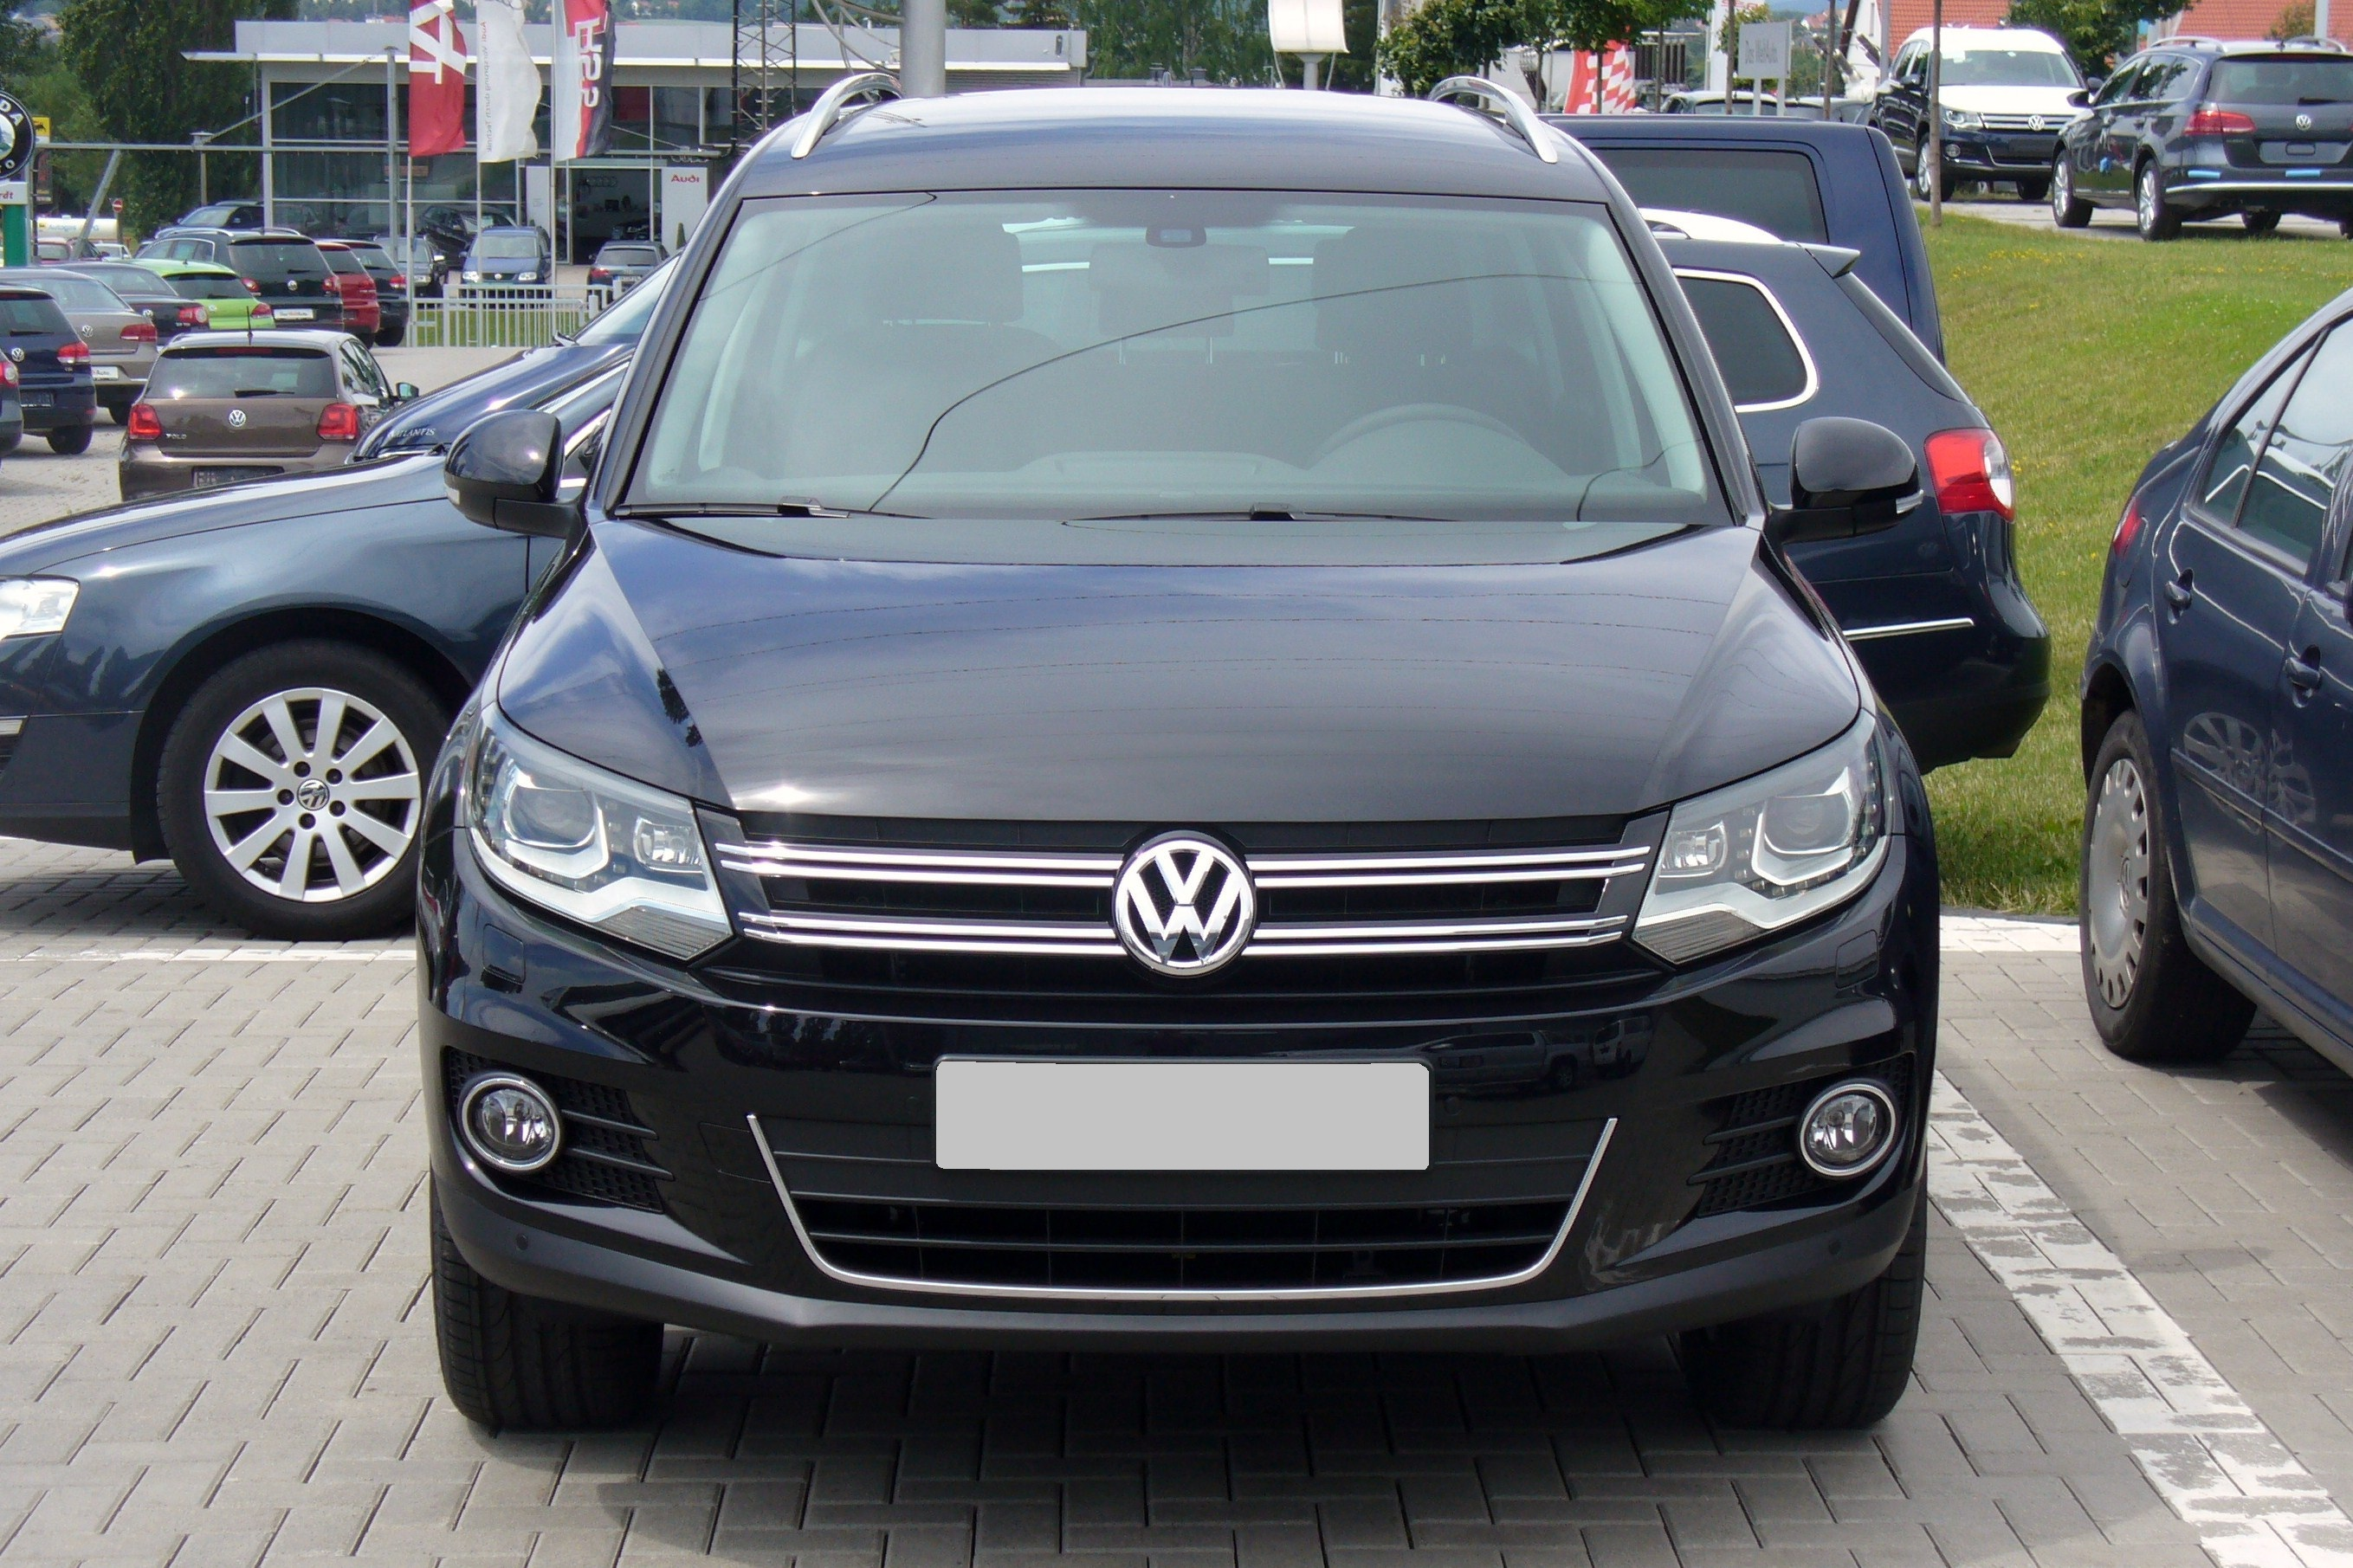 file vw tiguan sport style 2 0 tdi 4motion deep black facelift front jpg wikimedia commons. Black Bedroom Furniture Sets. Home Design Ideas